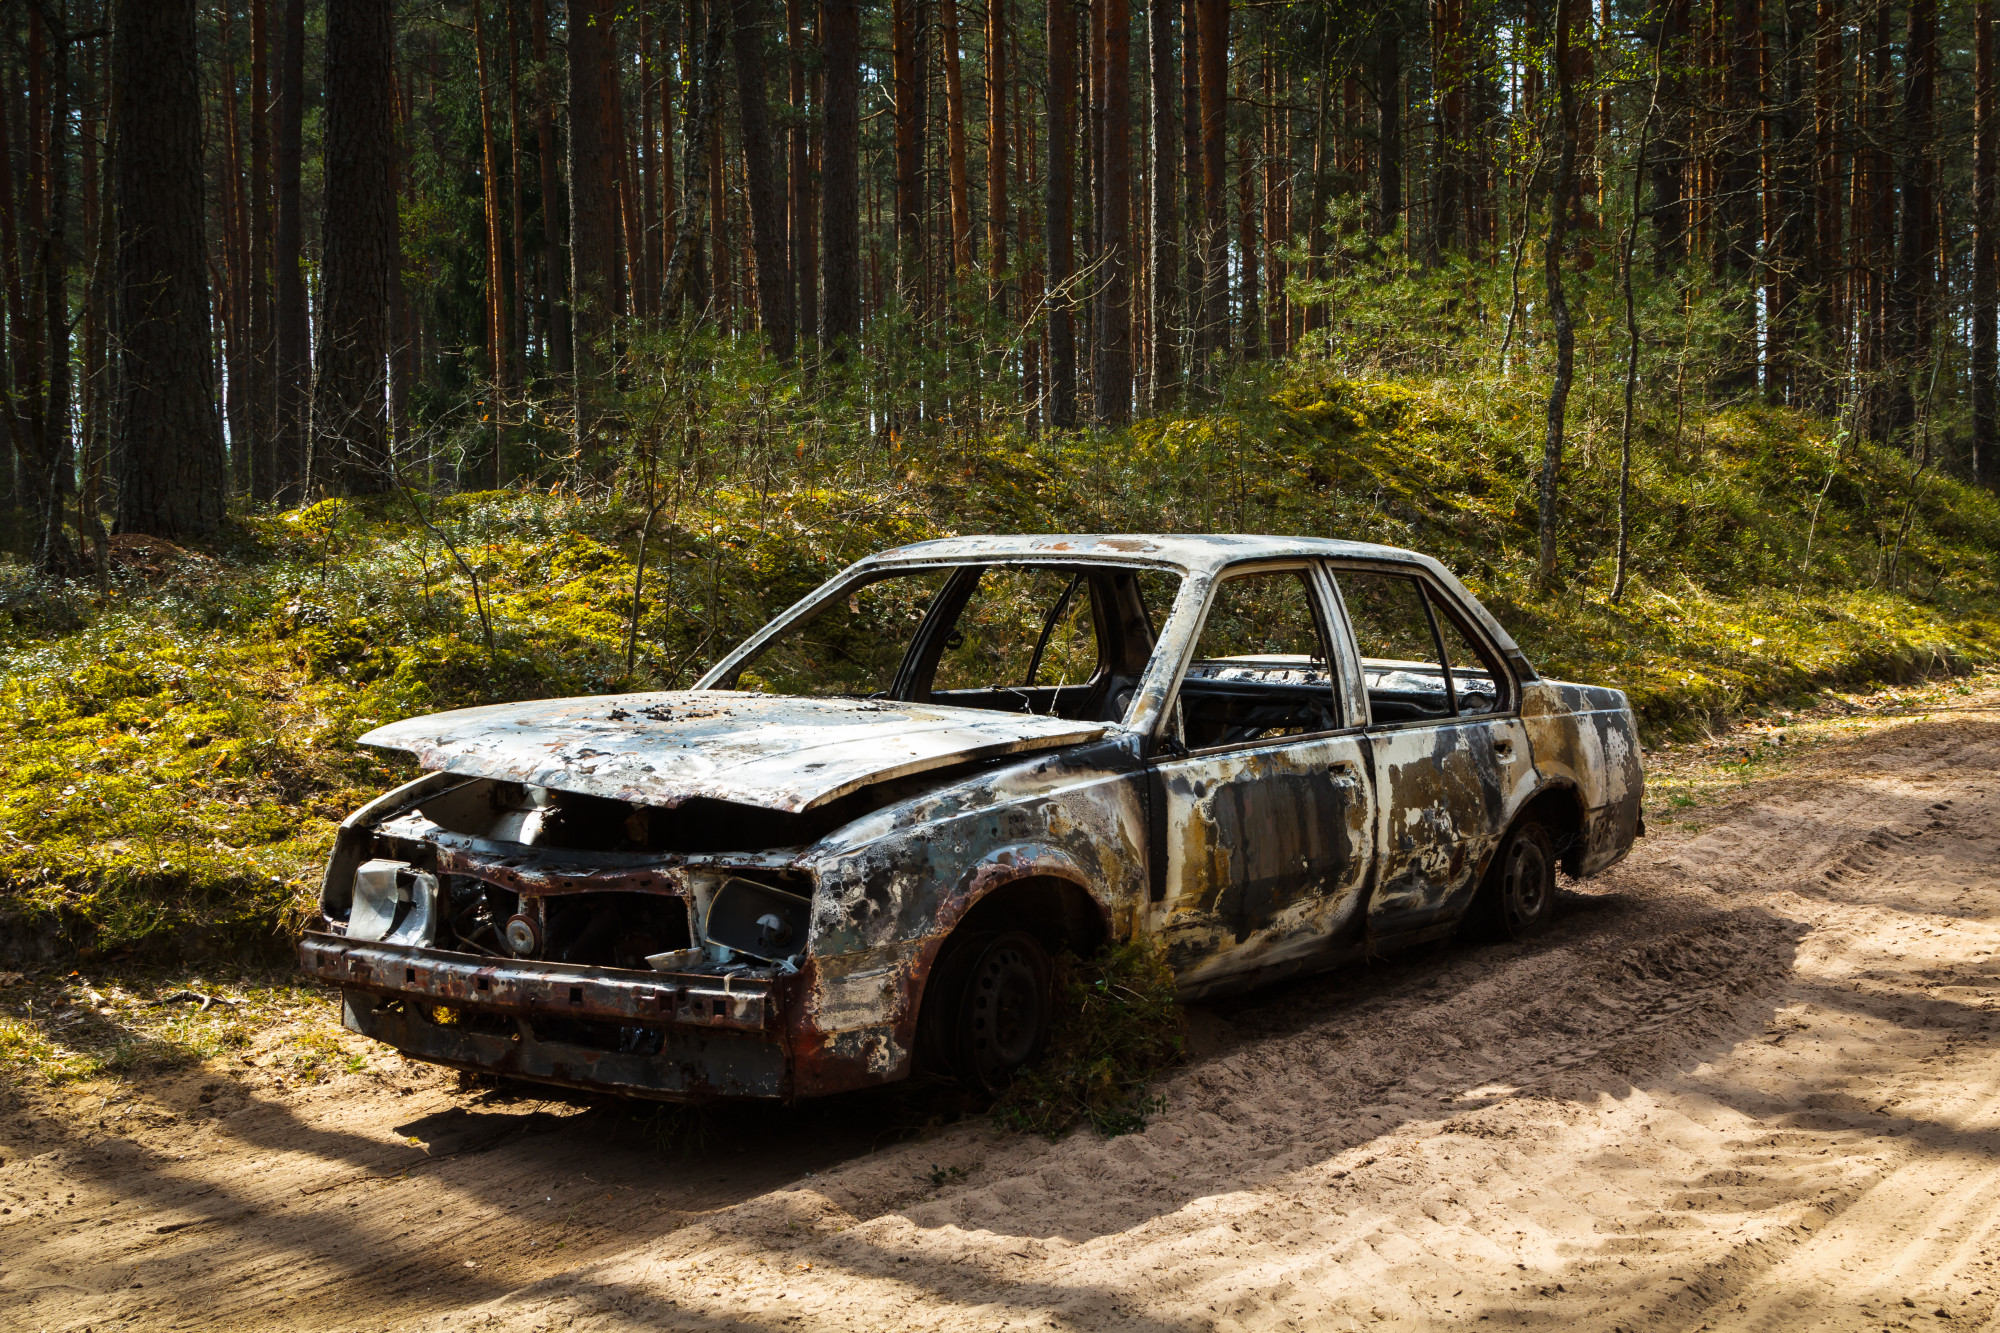 rusty car abandoned in forest